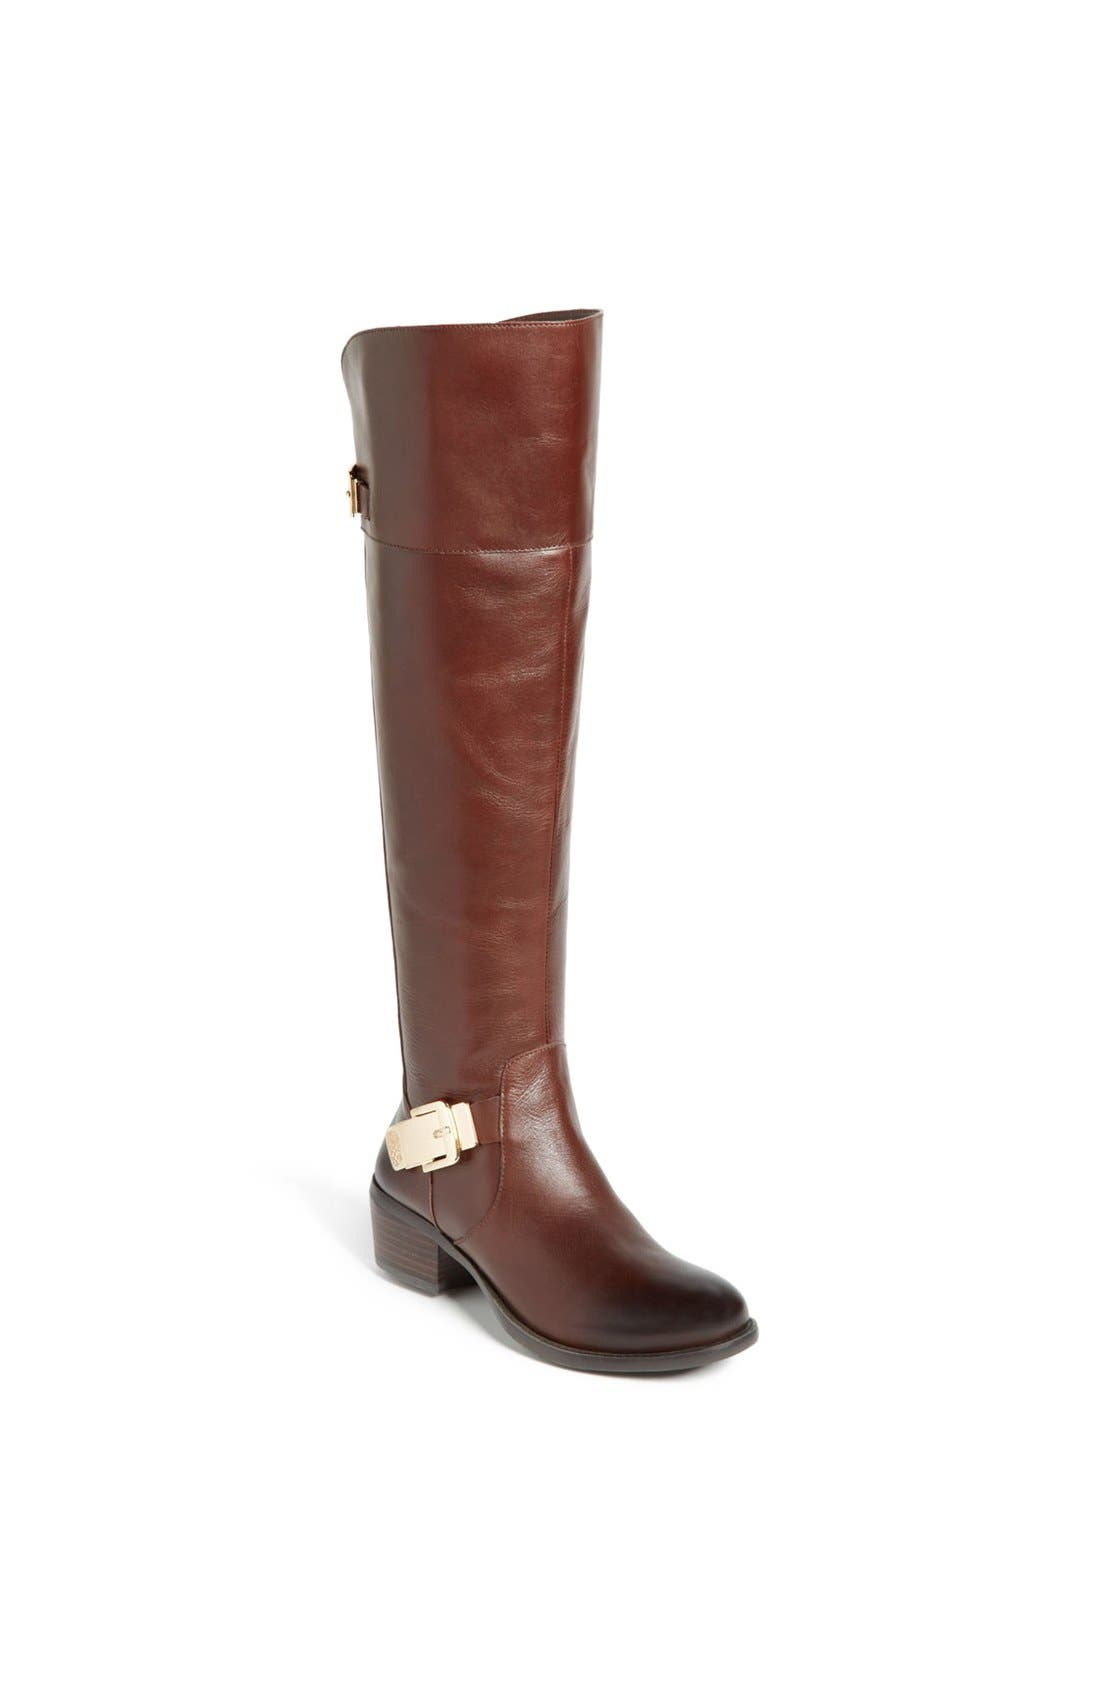 Main Image - Vince Camuto 'Bocca' Over the Knee Boot